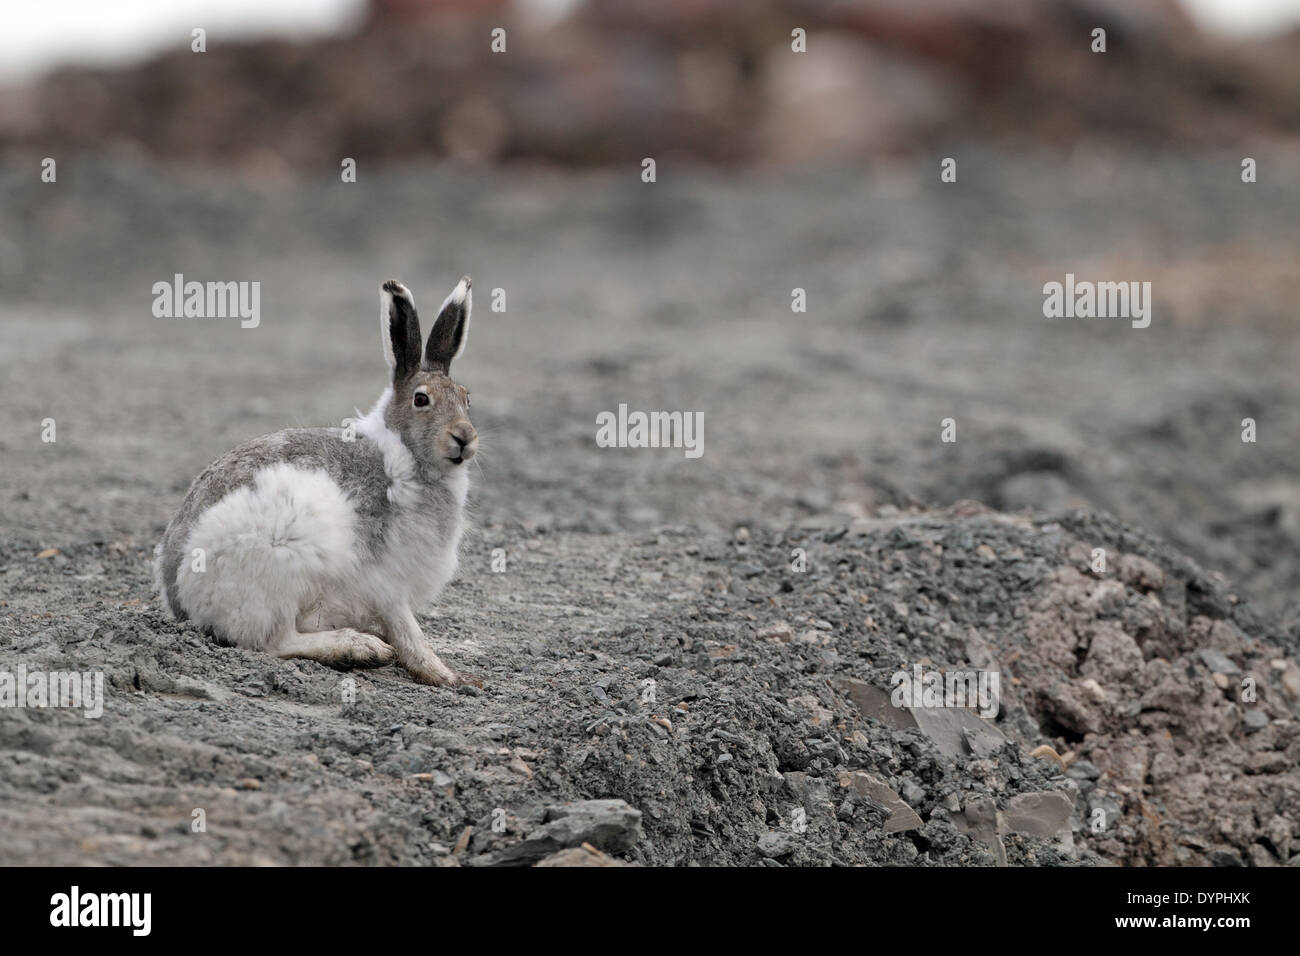 Arctic Hare, Lepus arcticus, in mainly white pelage - Stock Image